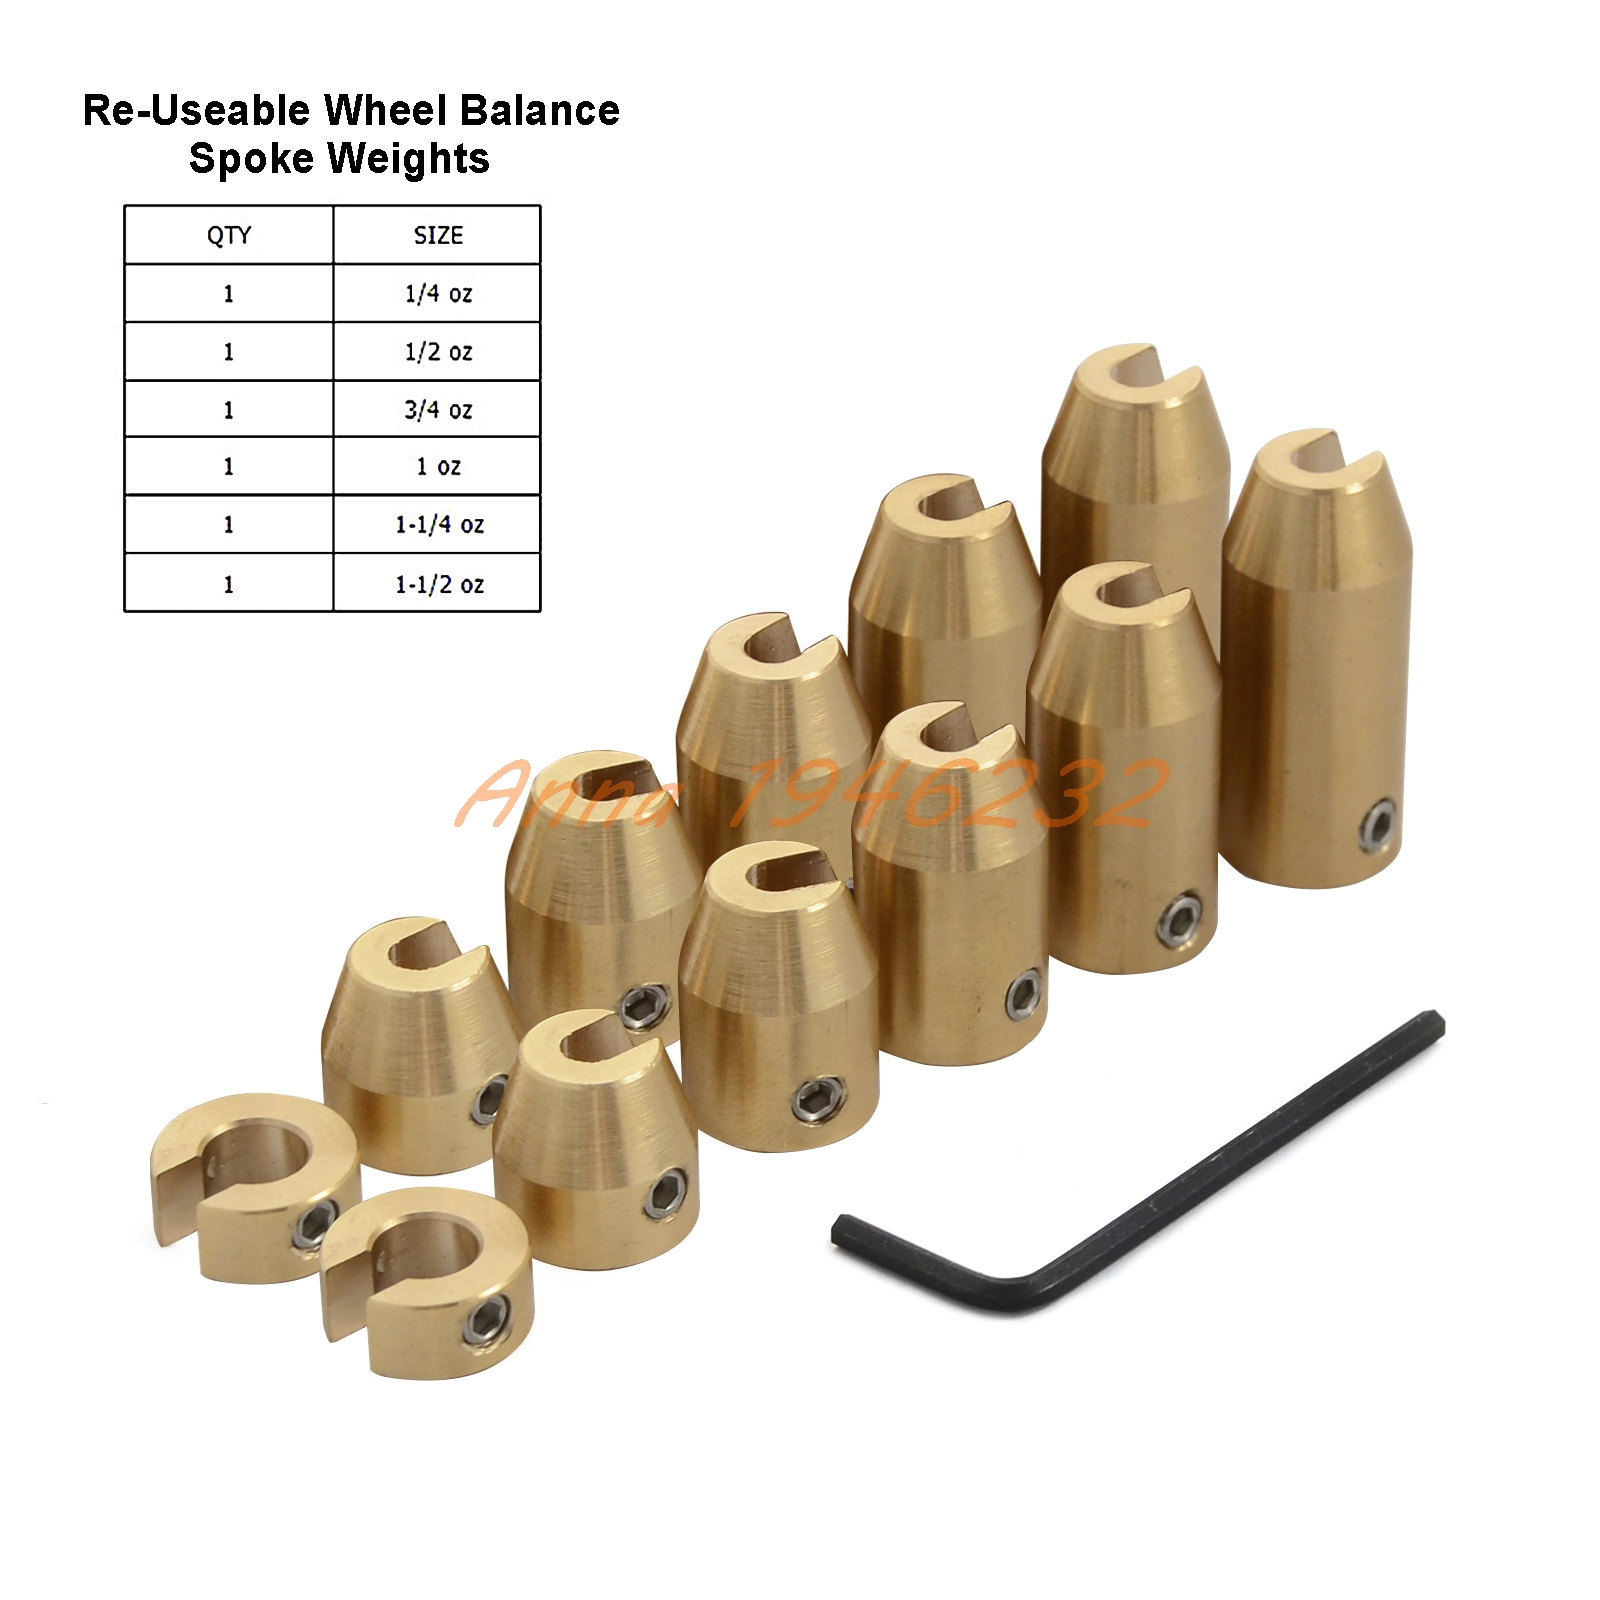 12 Pack Re-usable Motorcycle Brass Wheel Spoke Balance Weights For Super Moto Dual sport Harley-Davidson metric cruisers